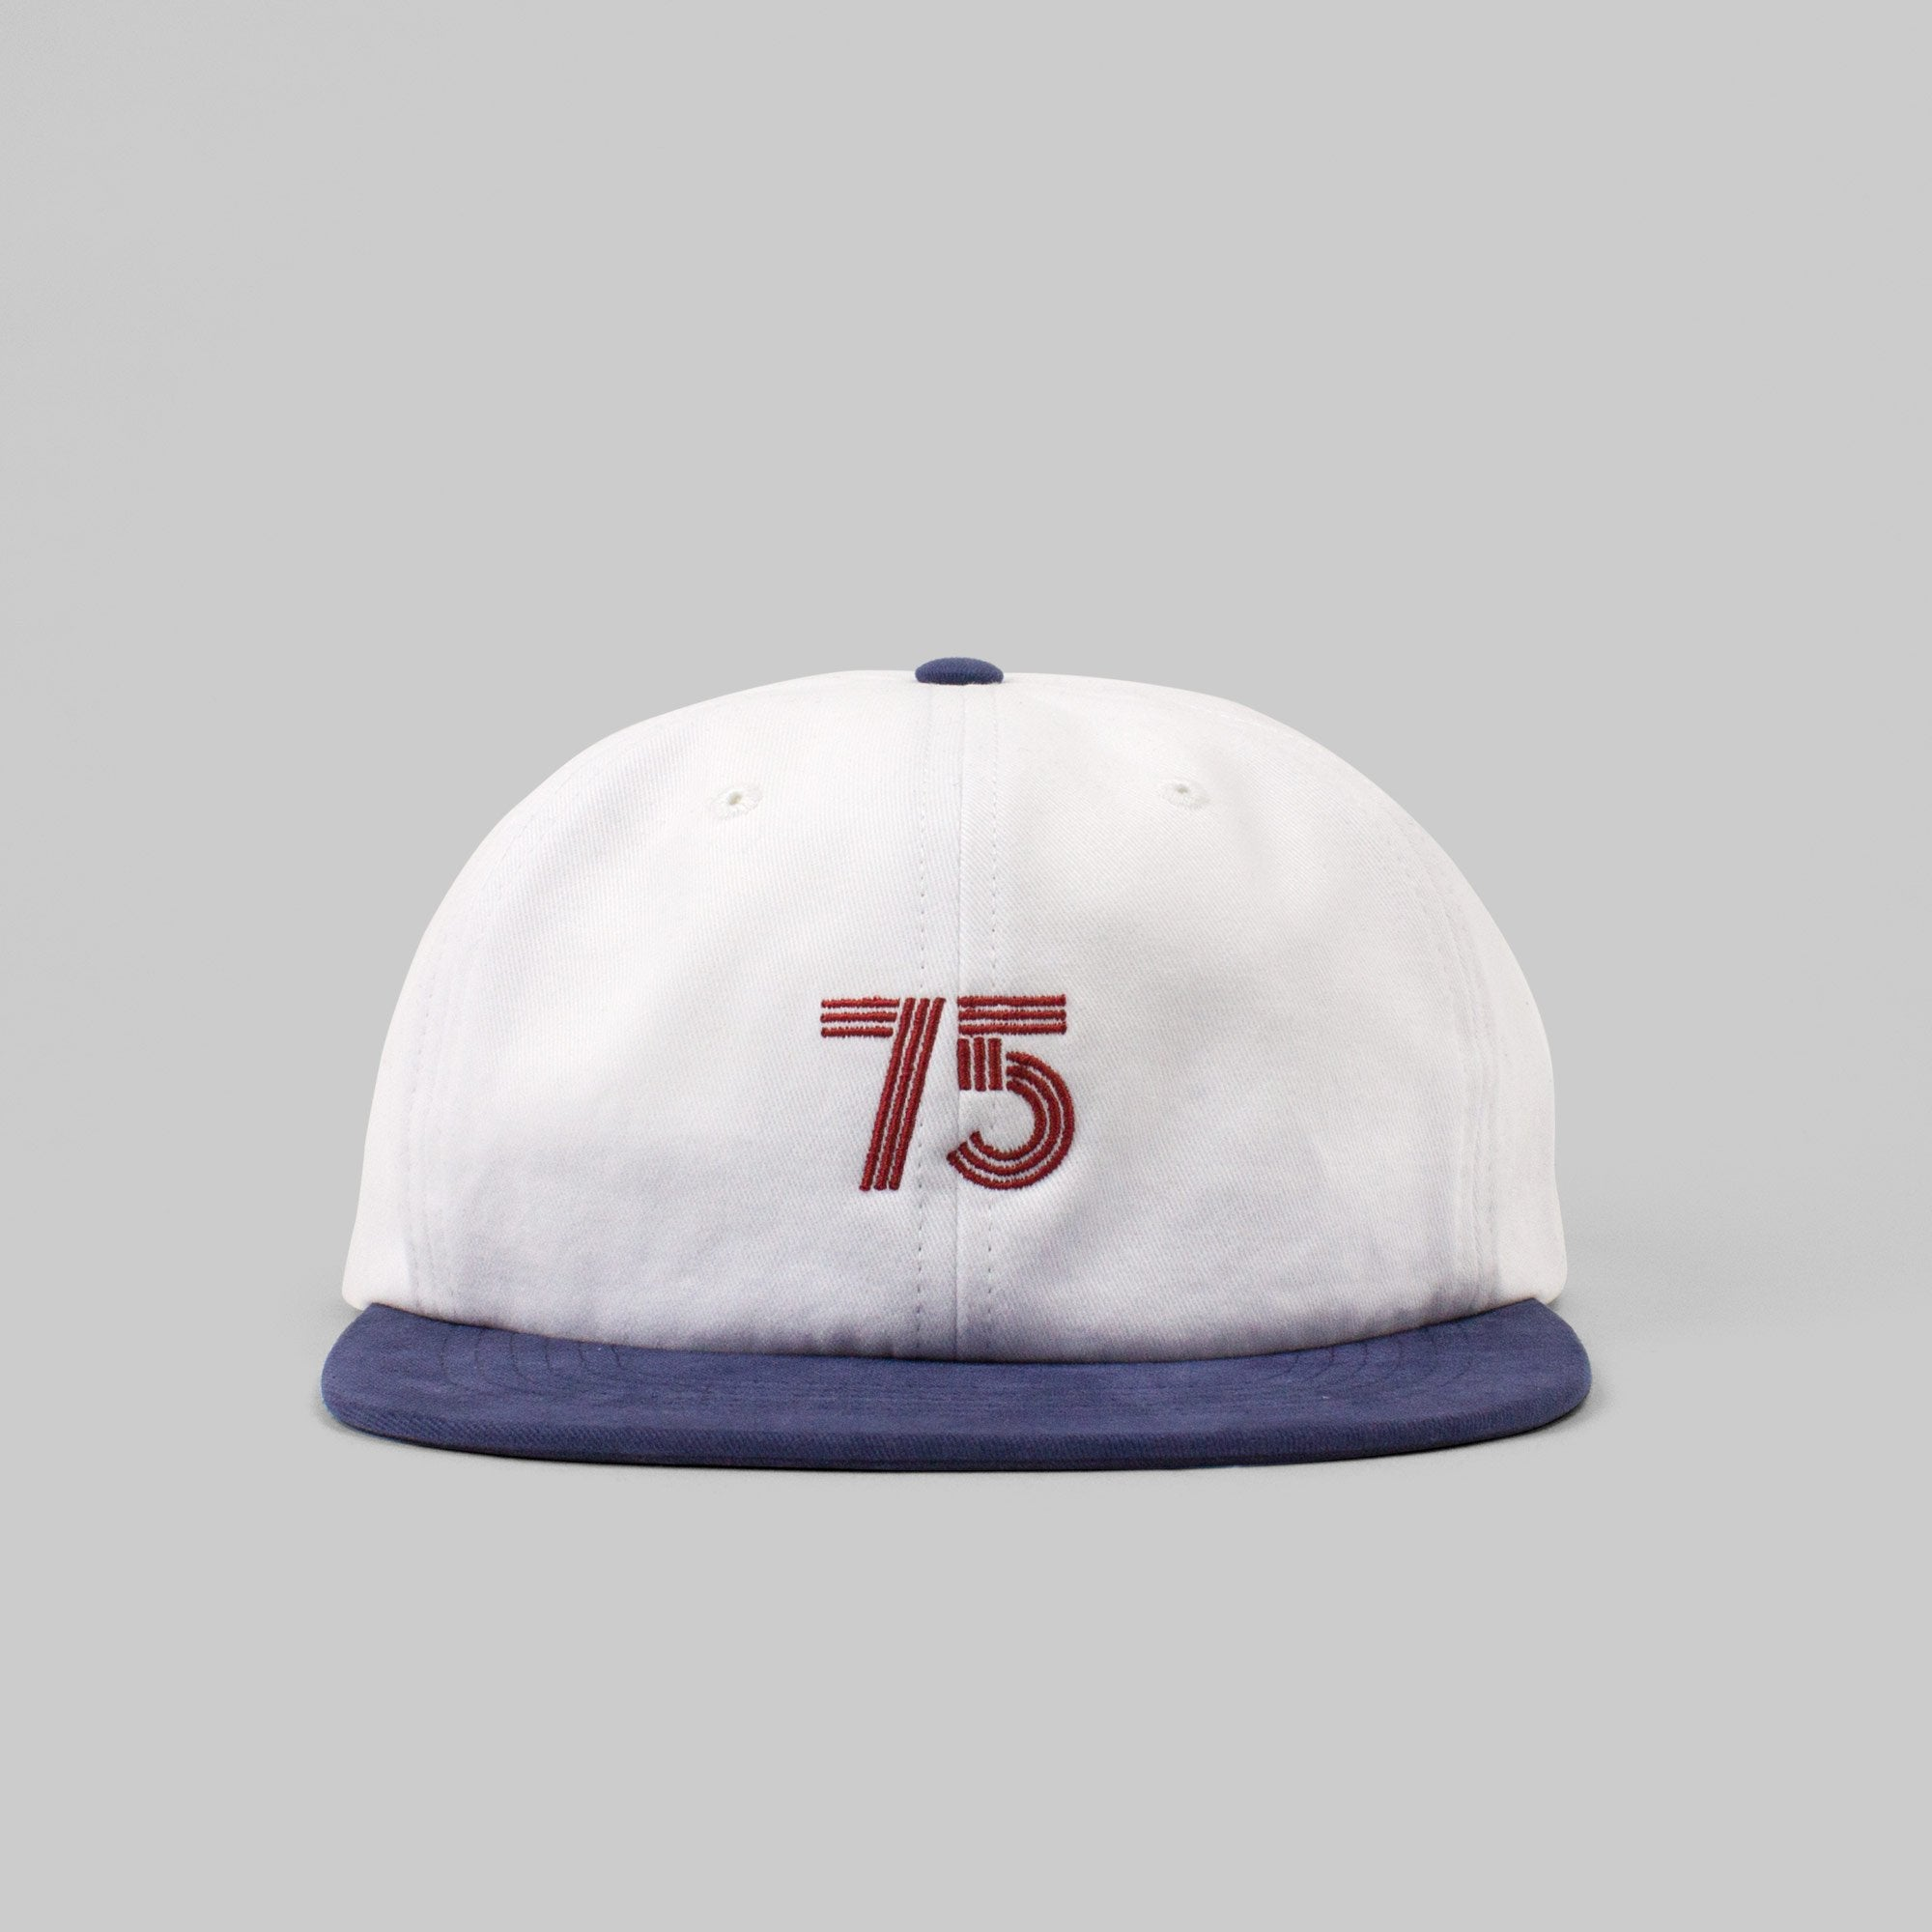 Six panel cap - Post REdecades - Class of 75 - White/navy